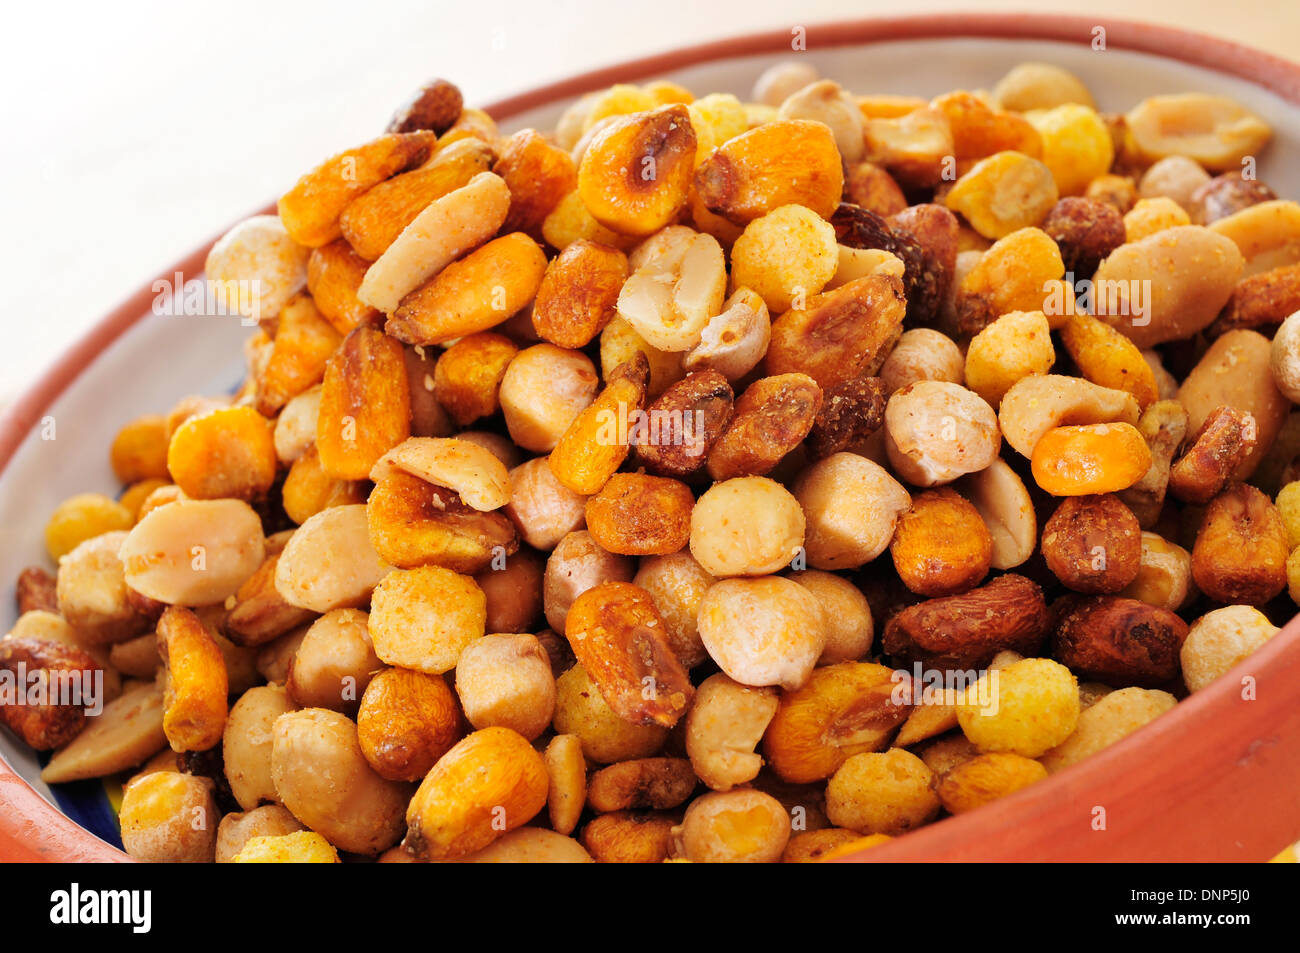 a bowl with mixed nuts, such as roasted and salted peanuts, corn or chickpeas - Stock Image